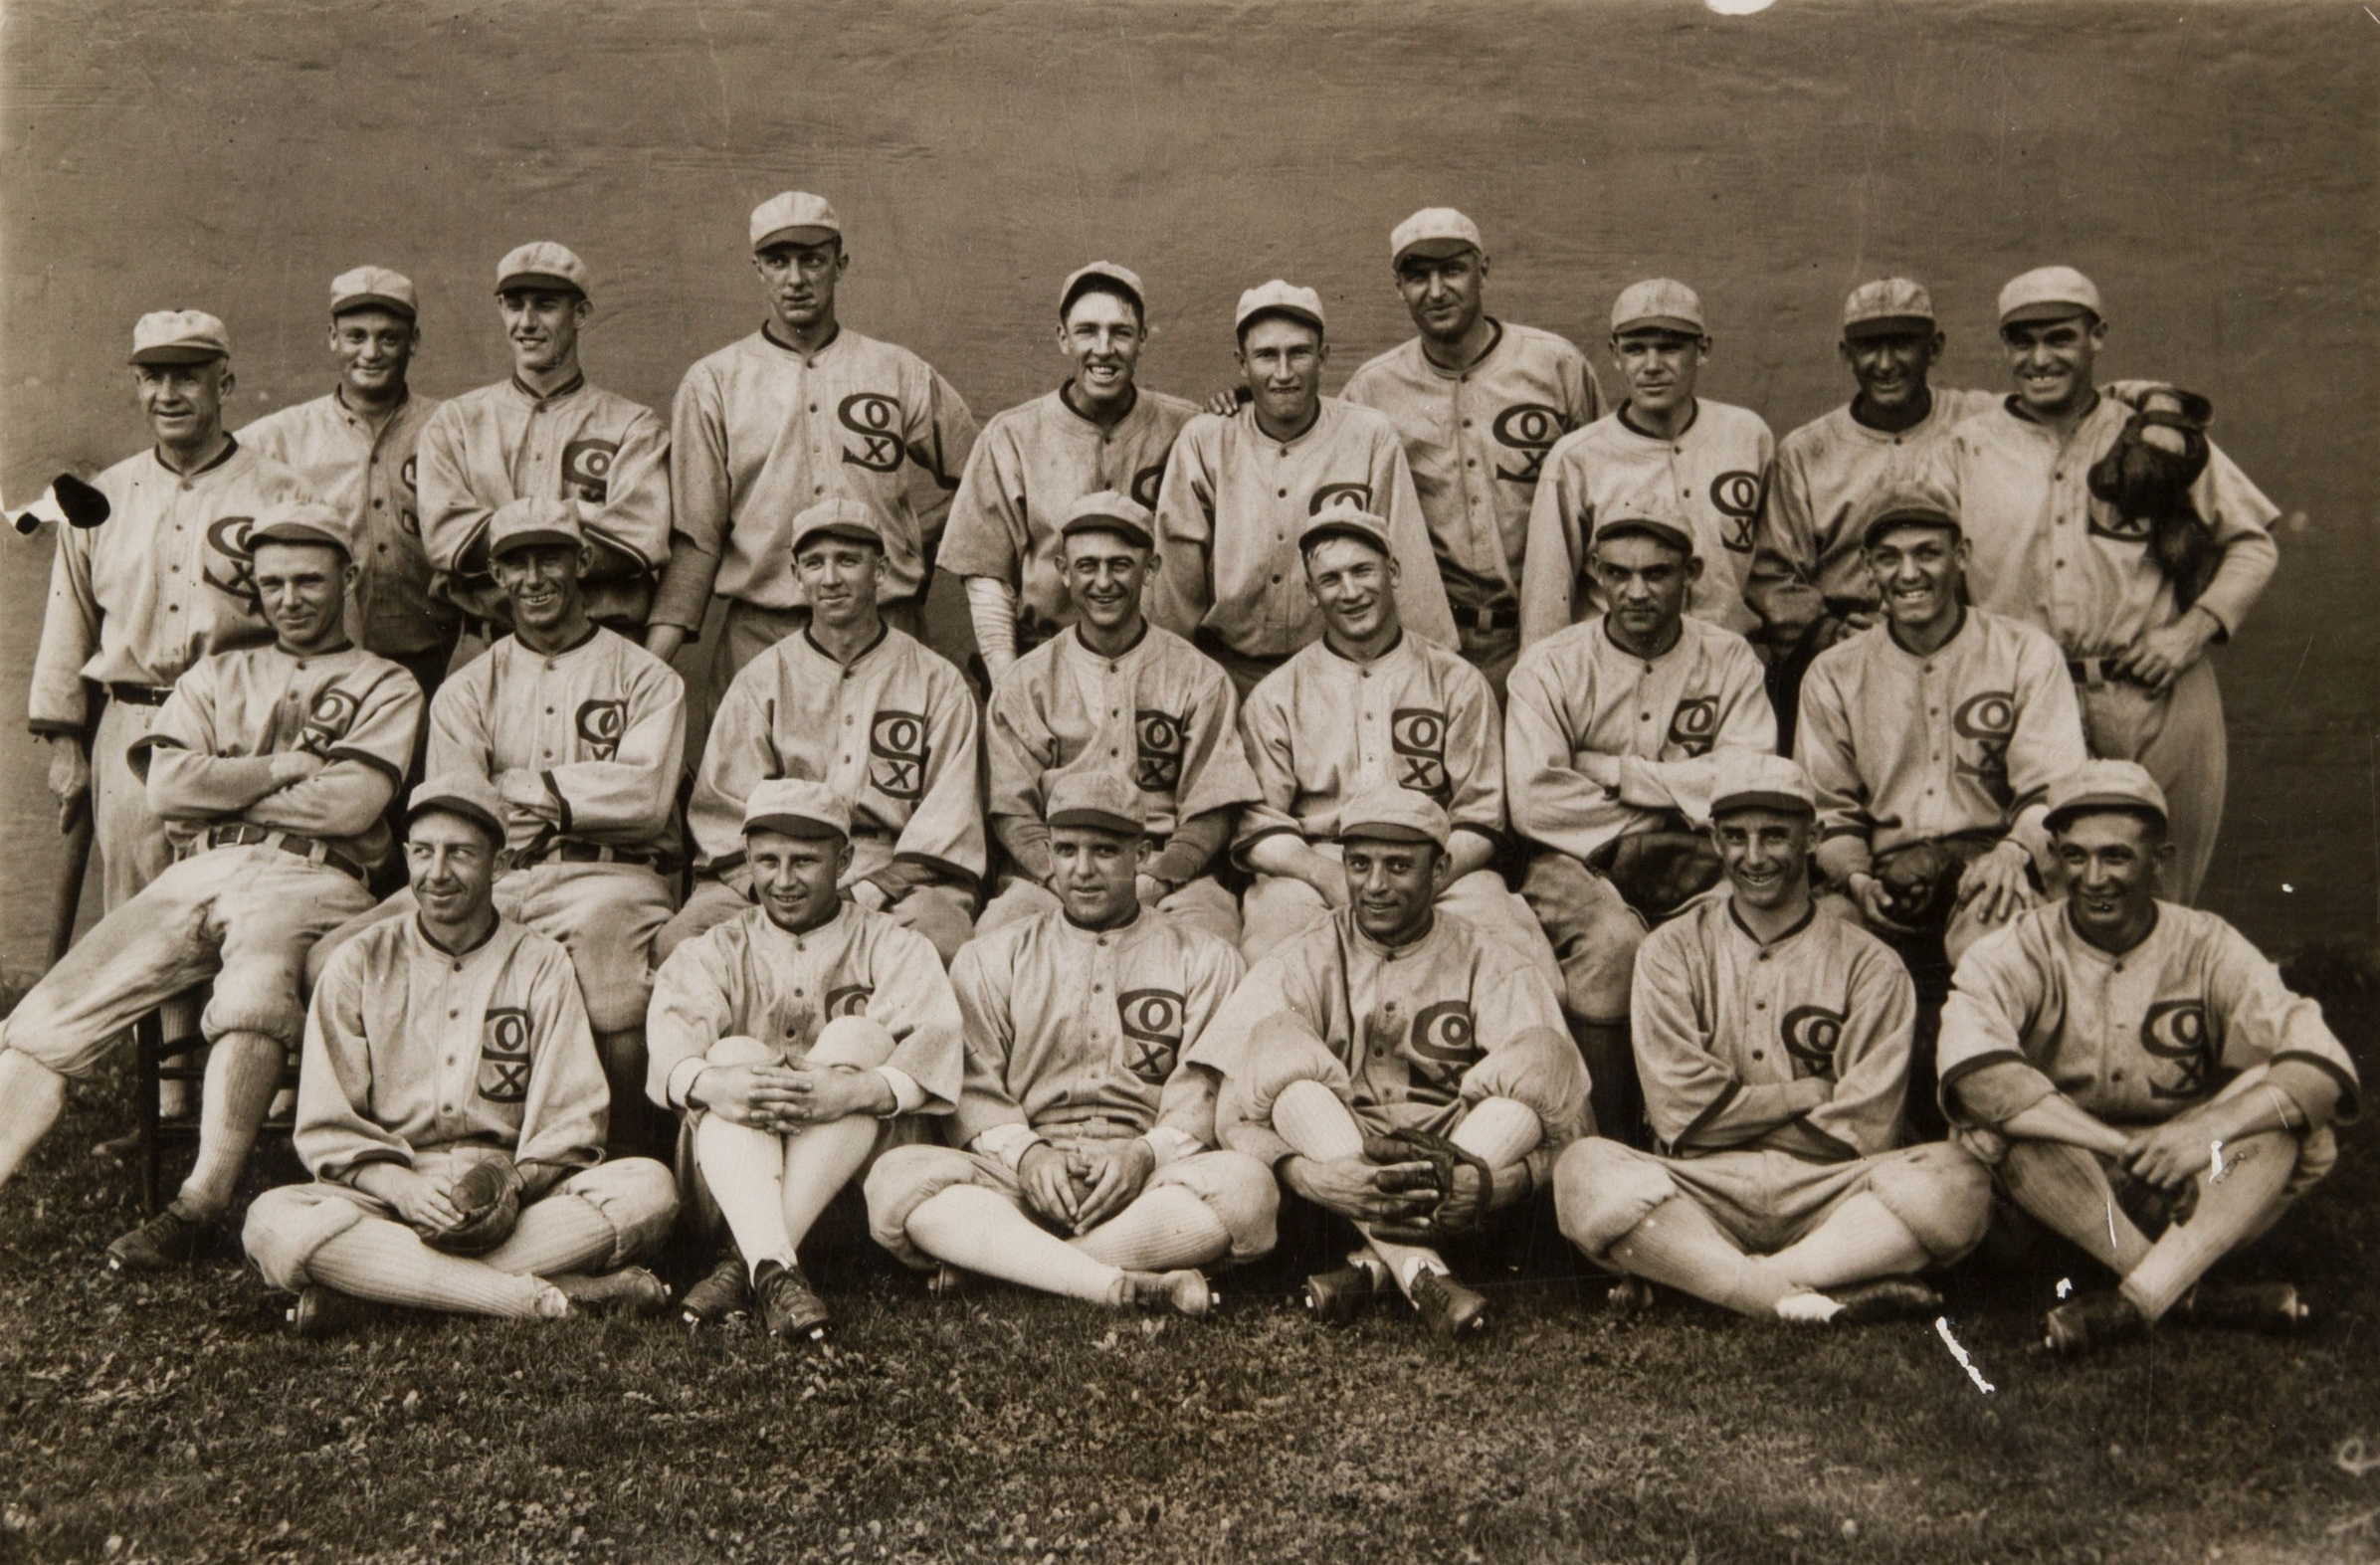 thesis statement for the black sox scandal The 1919 black sox scandal - the 1919 black sox scandal the 1919 world series resulted in the most famous scandal in baseball history eight players from the chicago white sox (later nicknamed the black sox) were accused of throwing the series against the cincinnati reds.